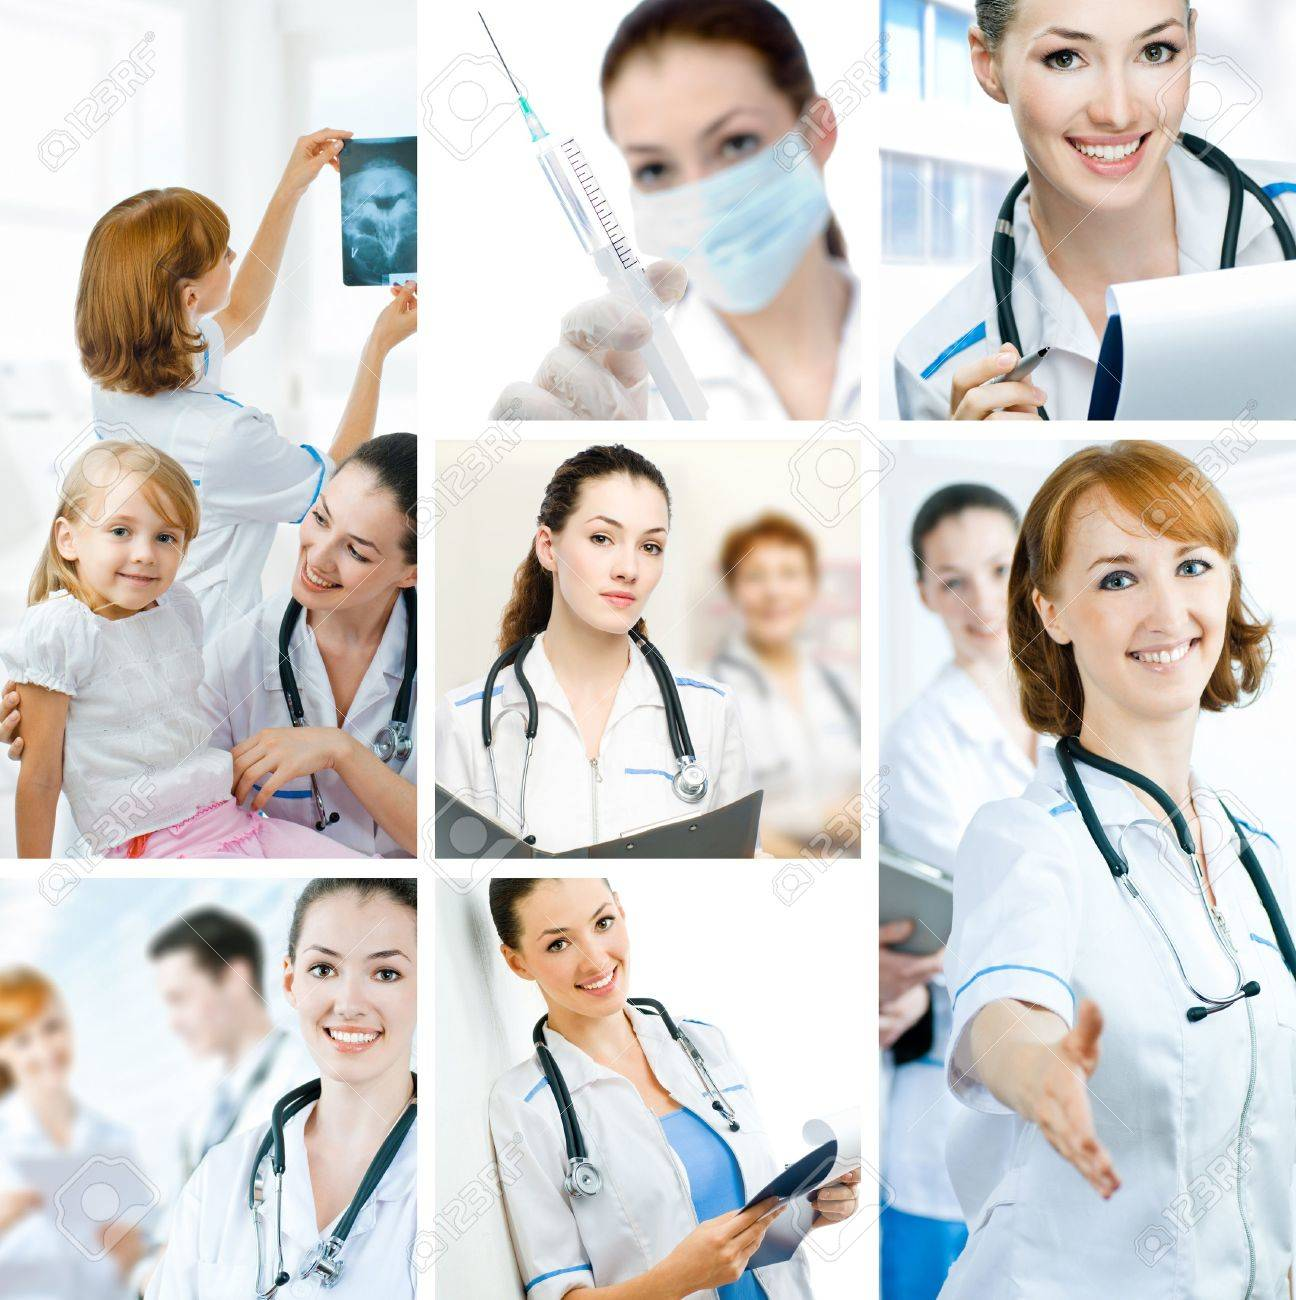 a team of experienced highly qualified doctors Stock Photo - 5748555